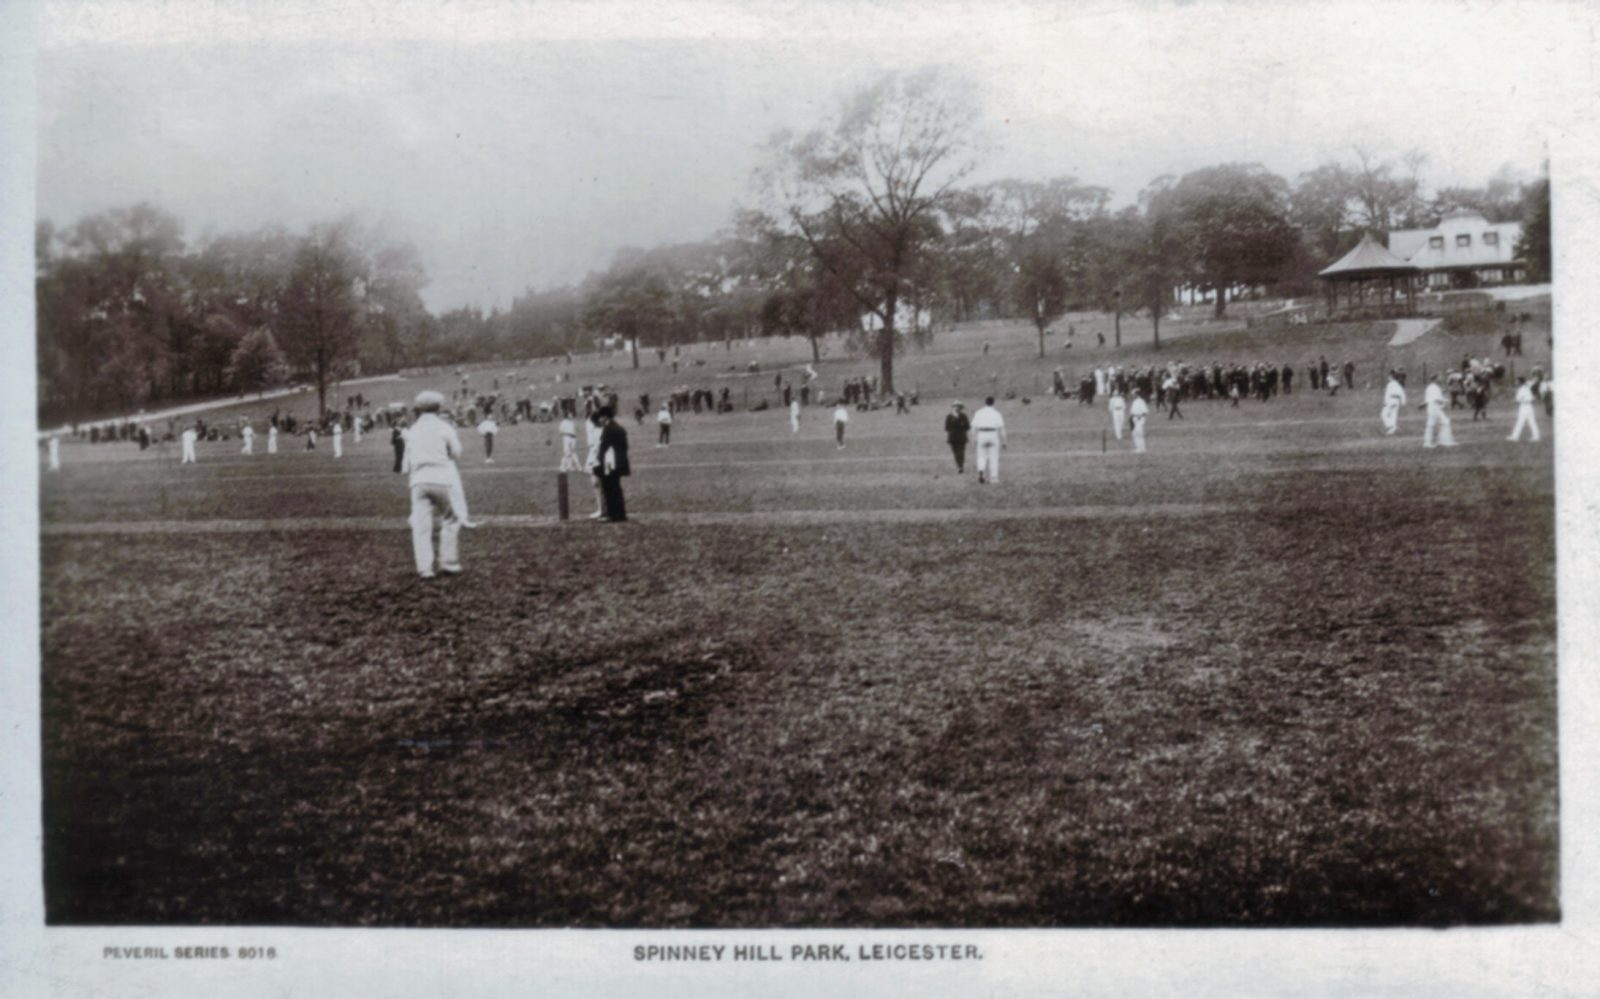 Spinney Hill Park, Leicester. Undated: Cricket in the park with pavilion in the background. (File:1247)